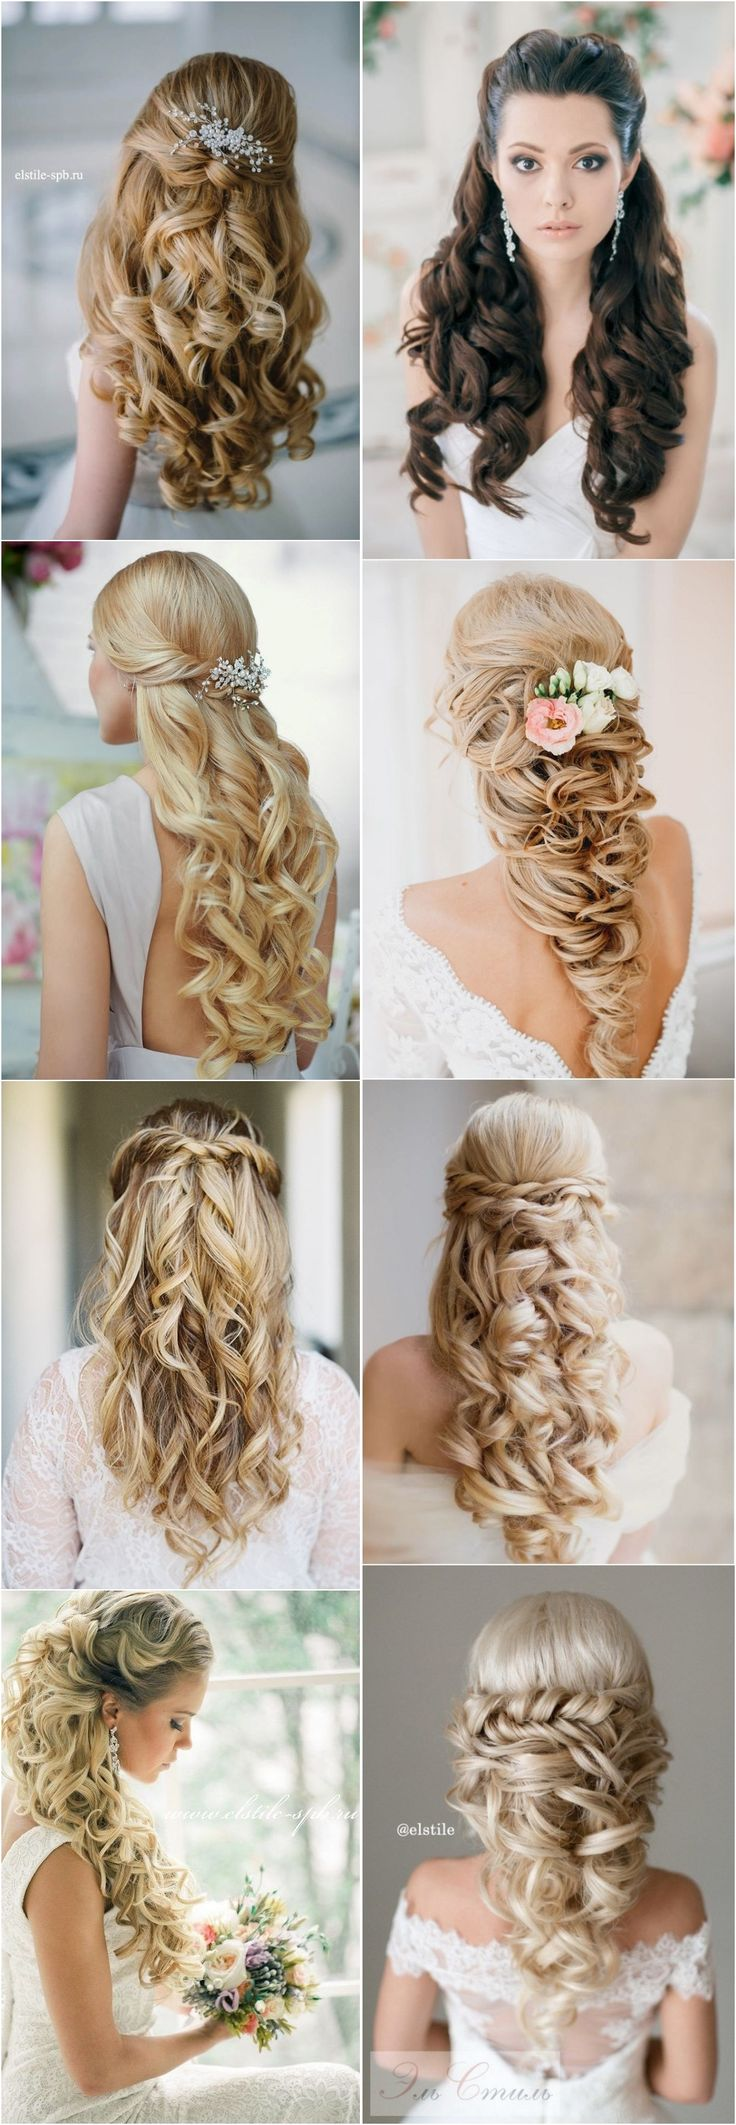 40 Stunning Half Up Half Down Wedding Hairstyles with Tutorial / http://www.deerpearlflowers.com/15-stunning-half-up-half-down-wedding-hairstyles-with-tutorial/40 Stunning Half Up Half Down Wedding Hairstyles with Tutorial / http://www.deerpearlflowers.com/15-stunning-half-up-half-down-wedding-hairstyles-with-tutorial/